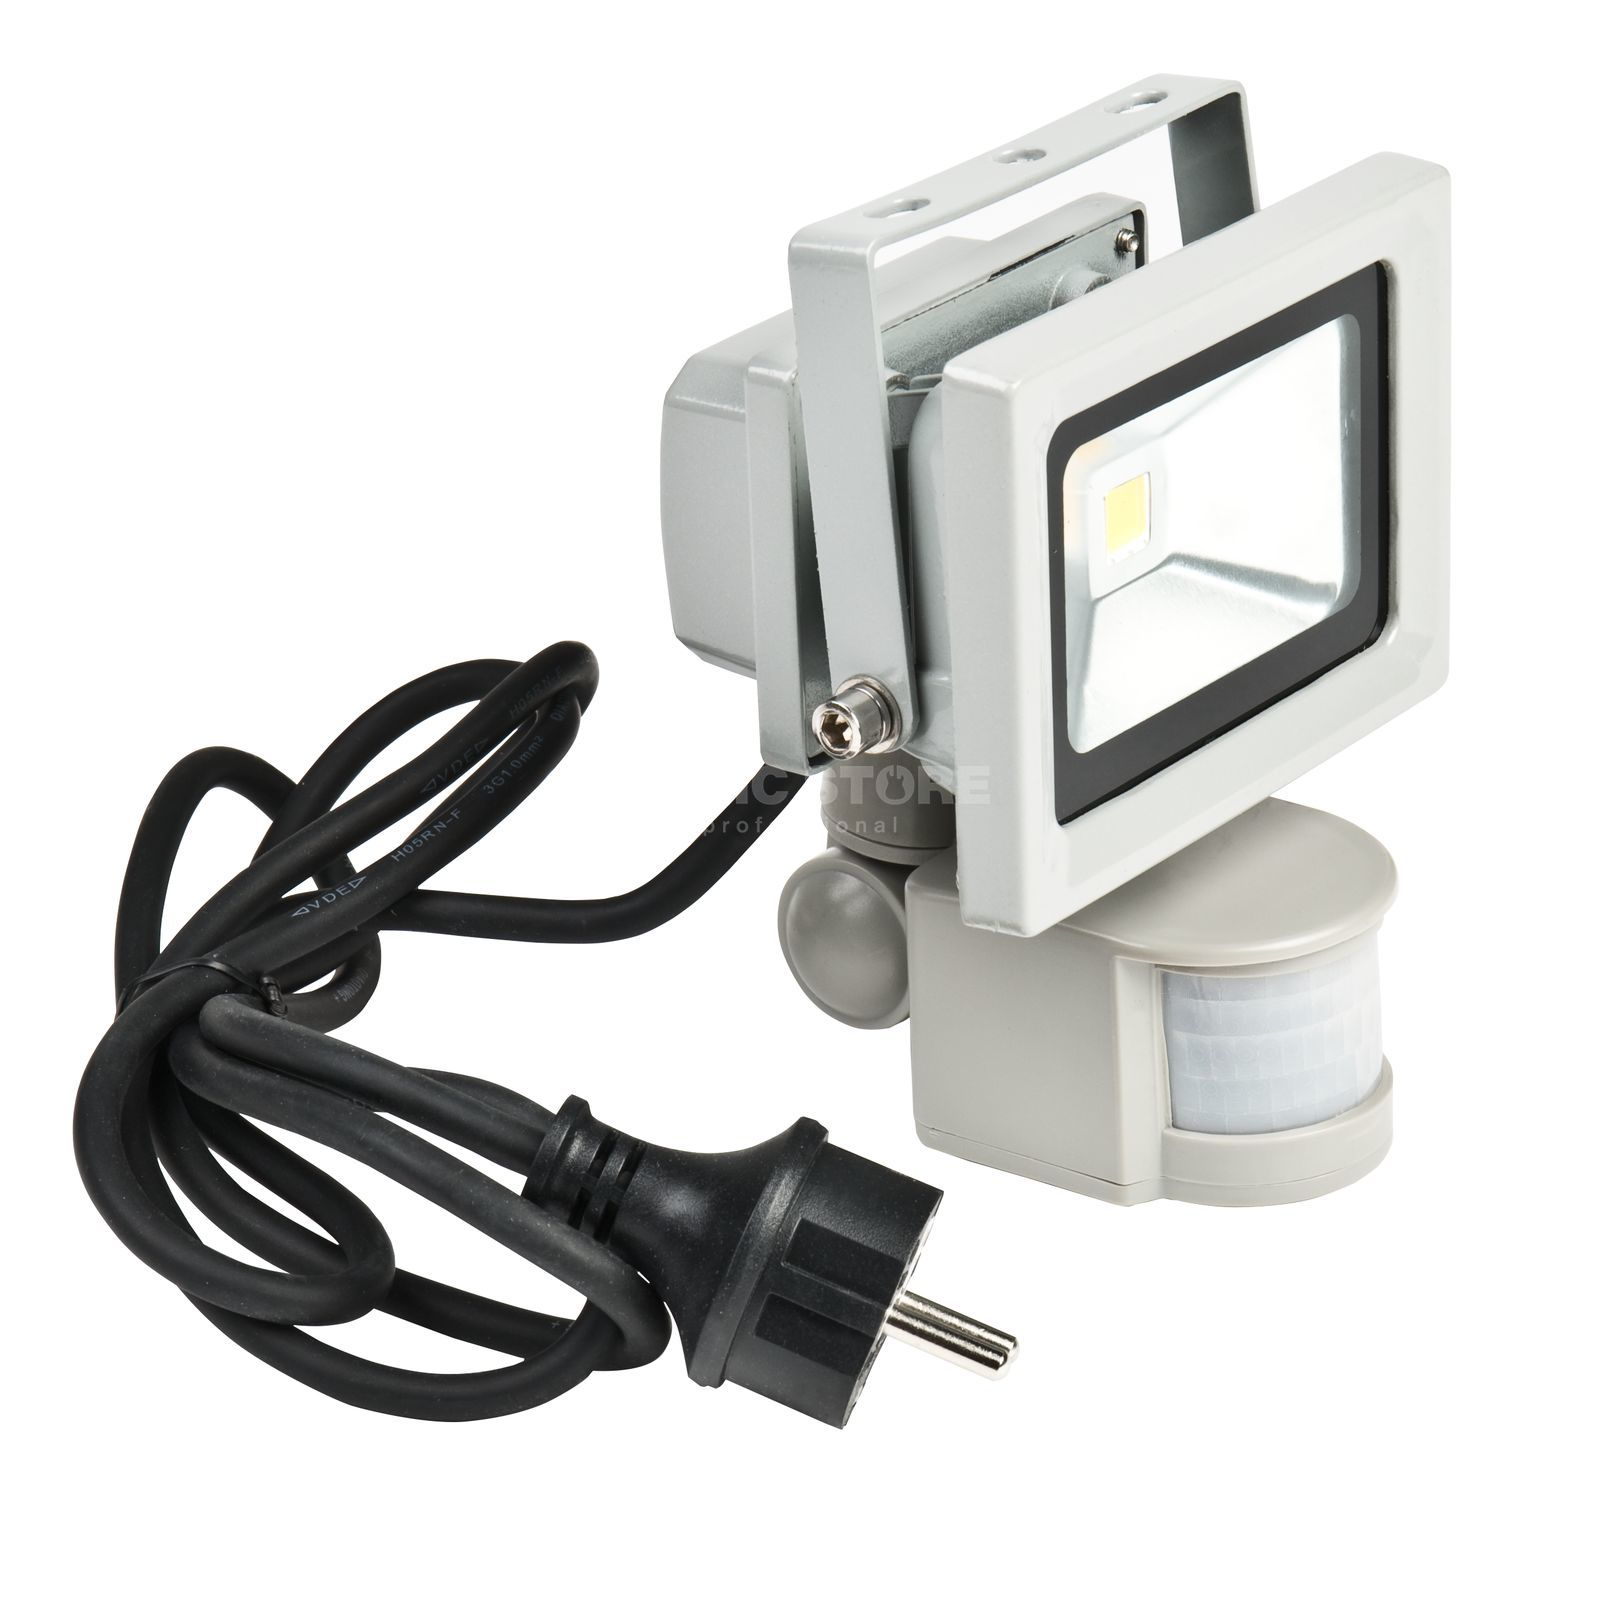 Eurolite LED IP FL-10 COB 3000K 120° BW Product Image